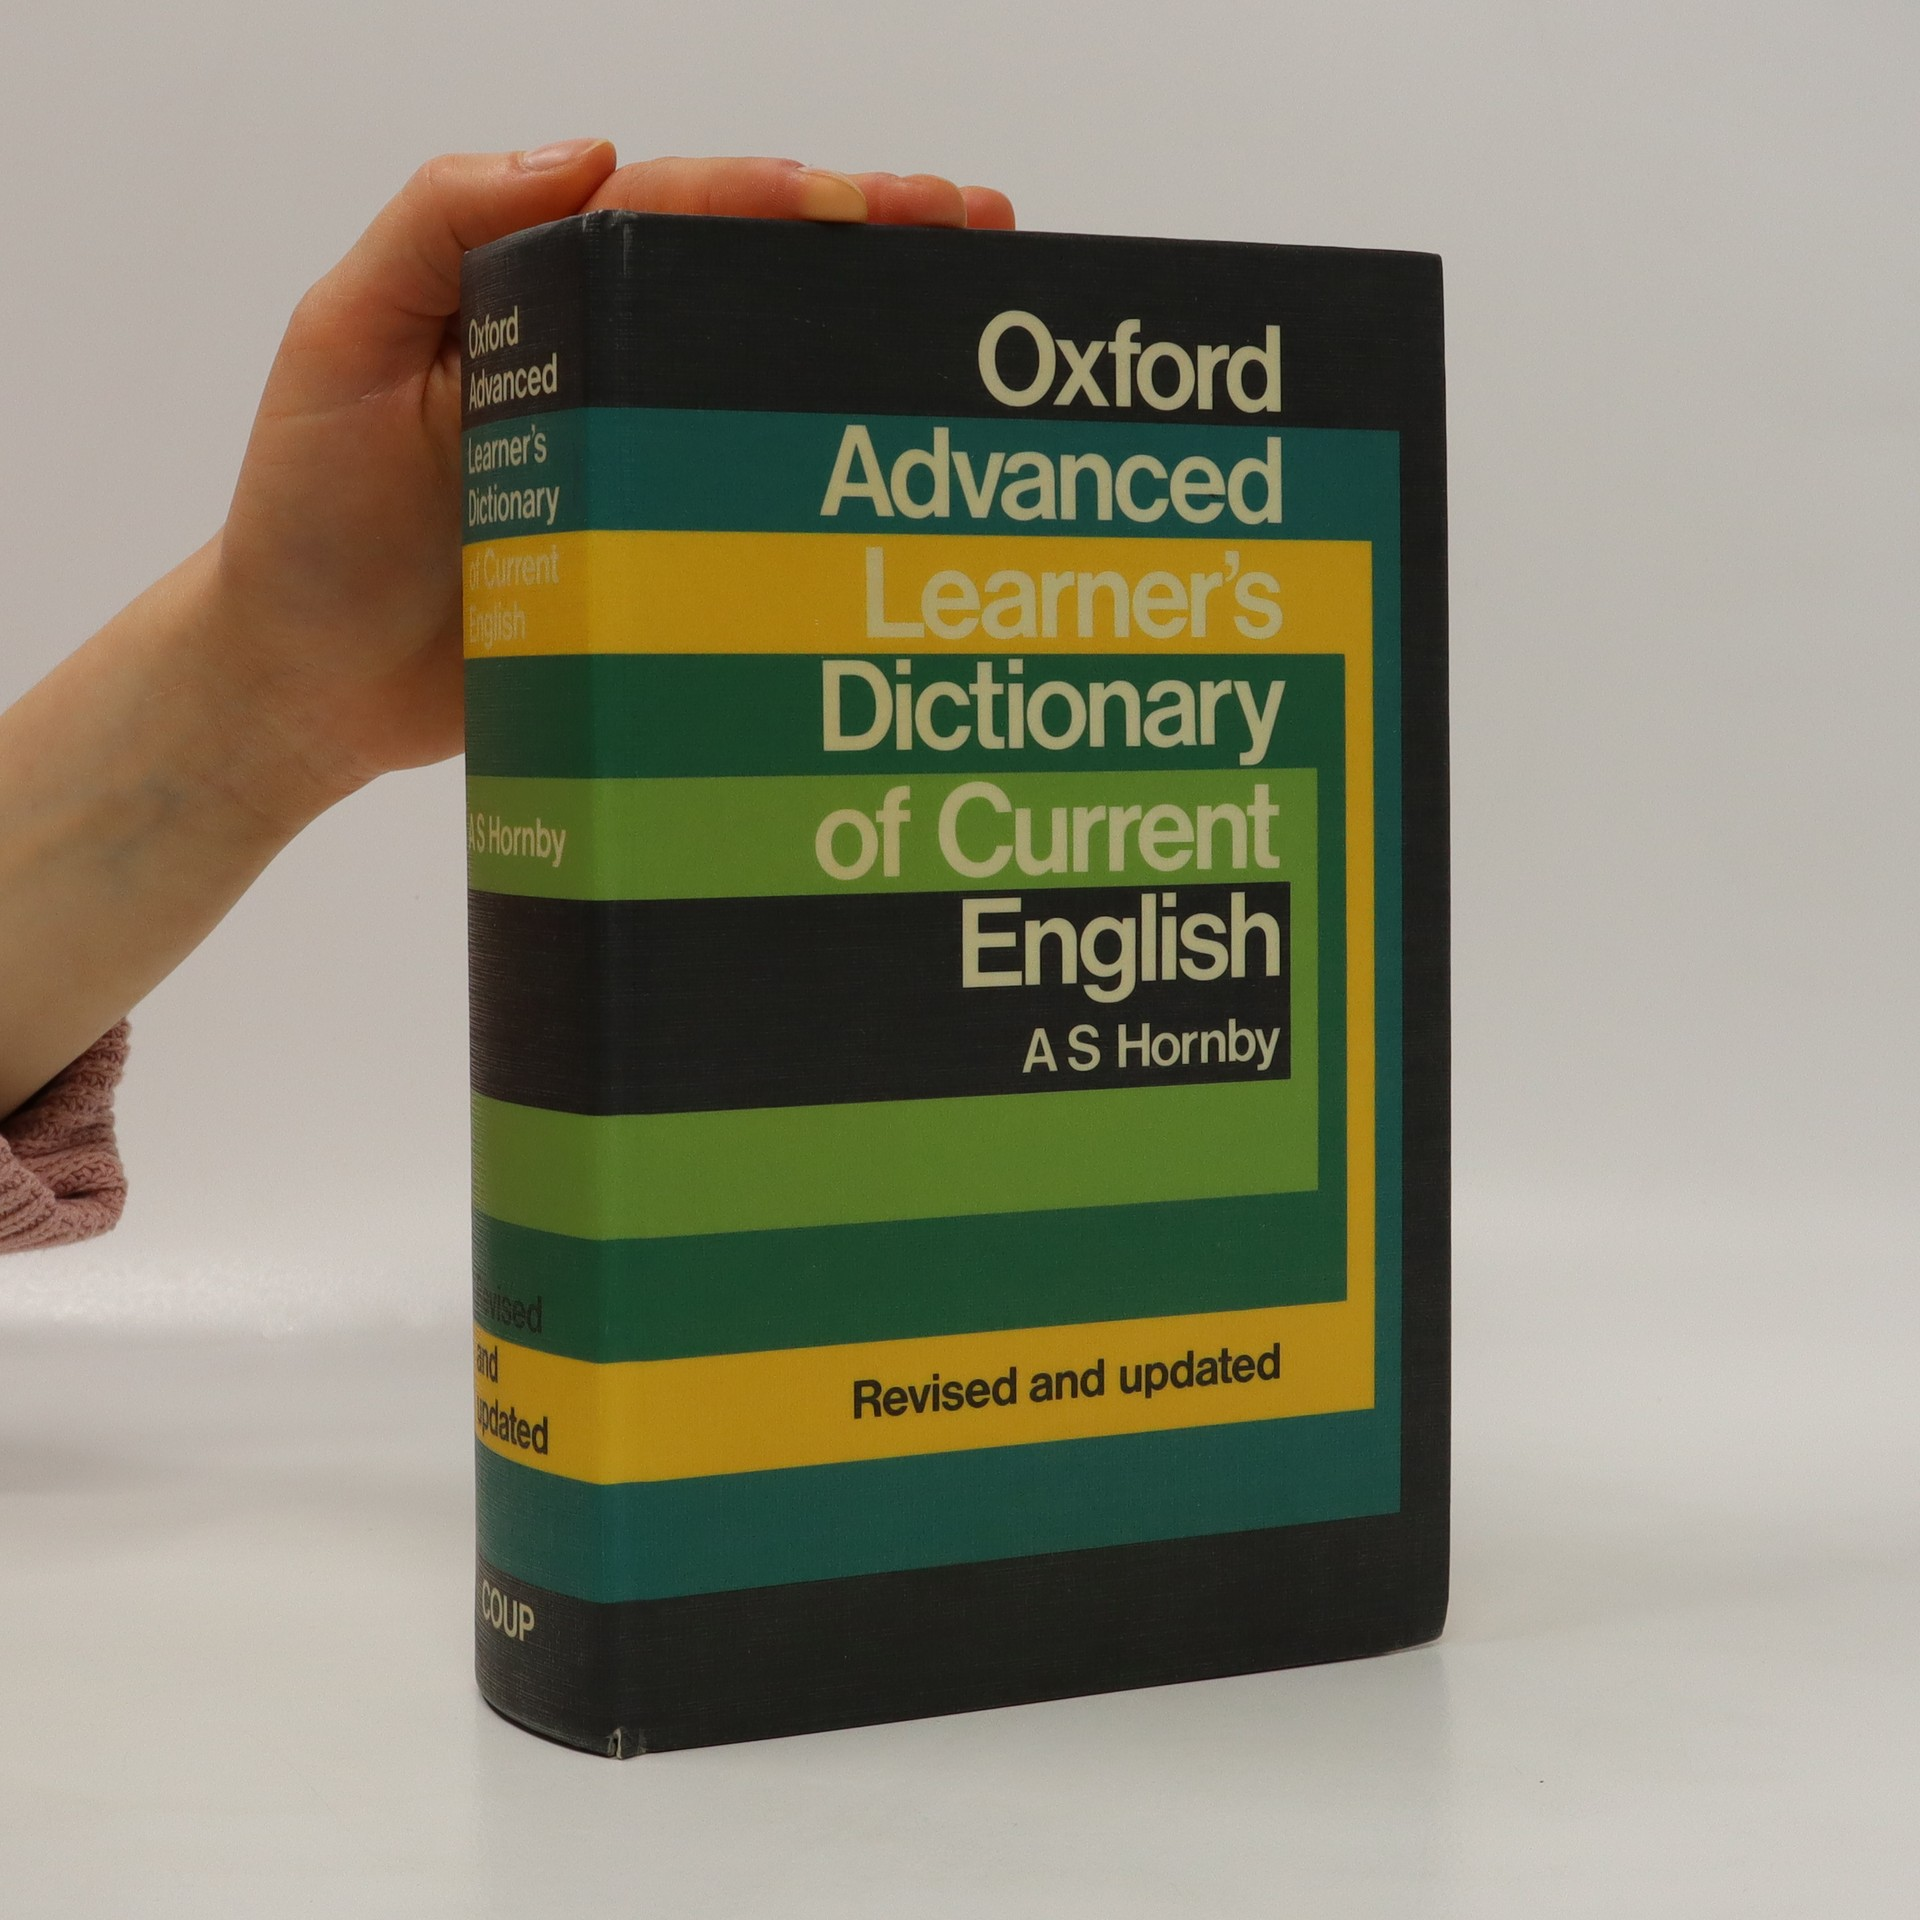 antikvární kniha Oxford advanced learner's dictionary of current English, 1983